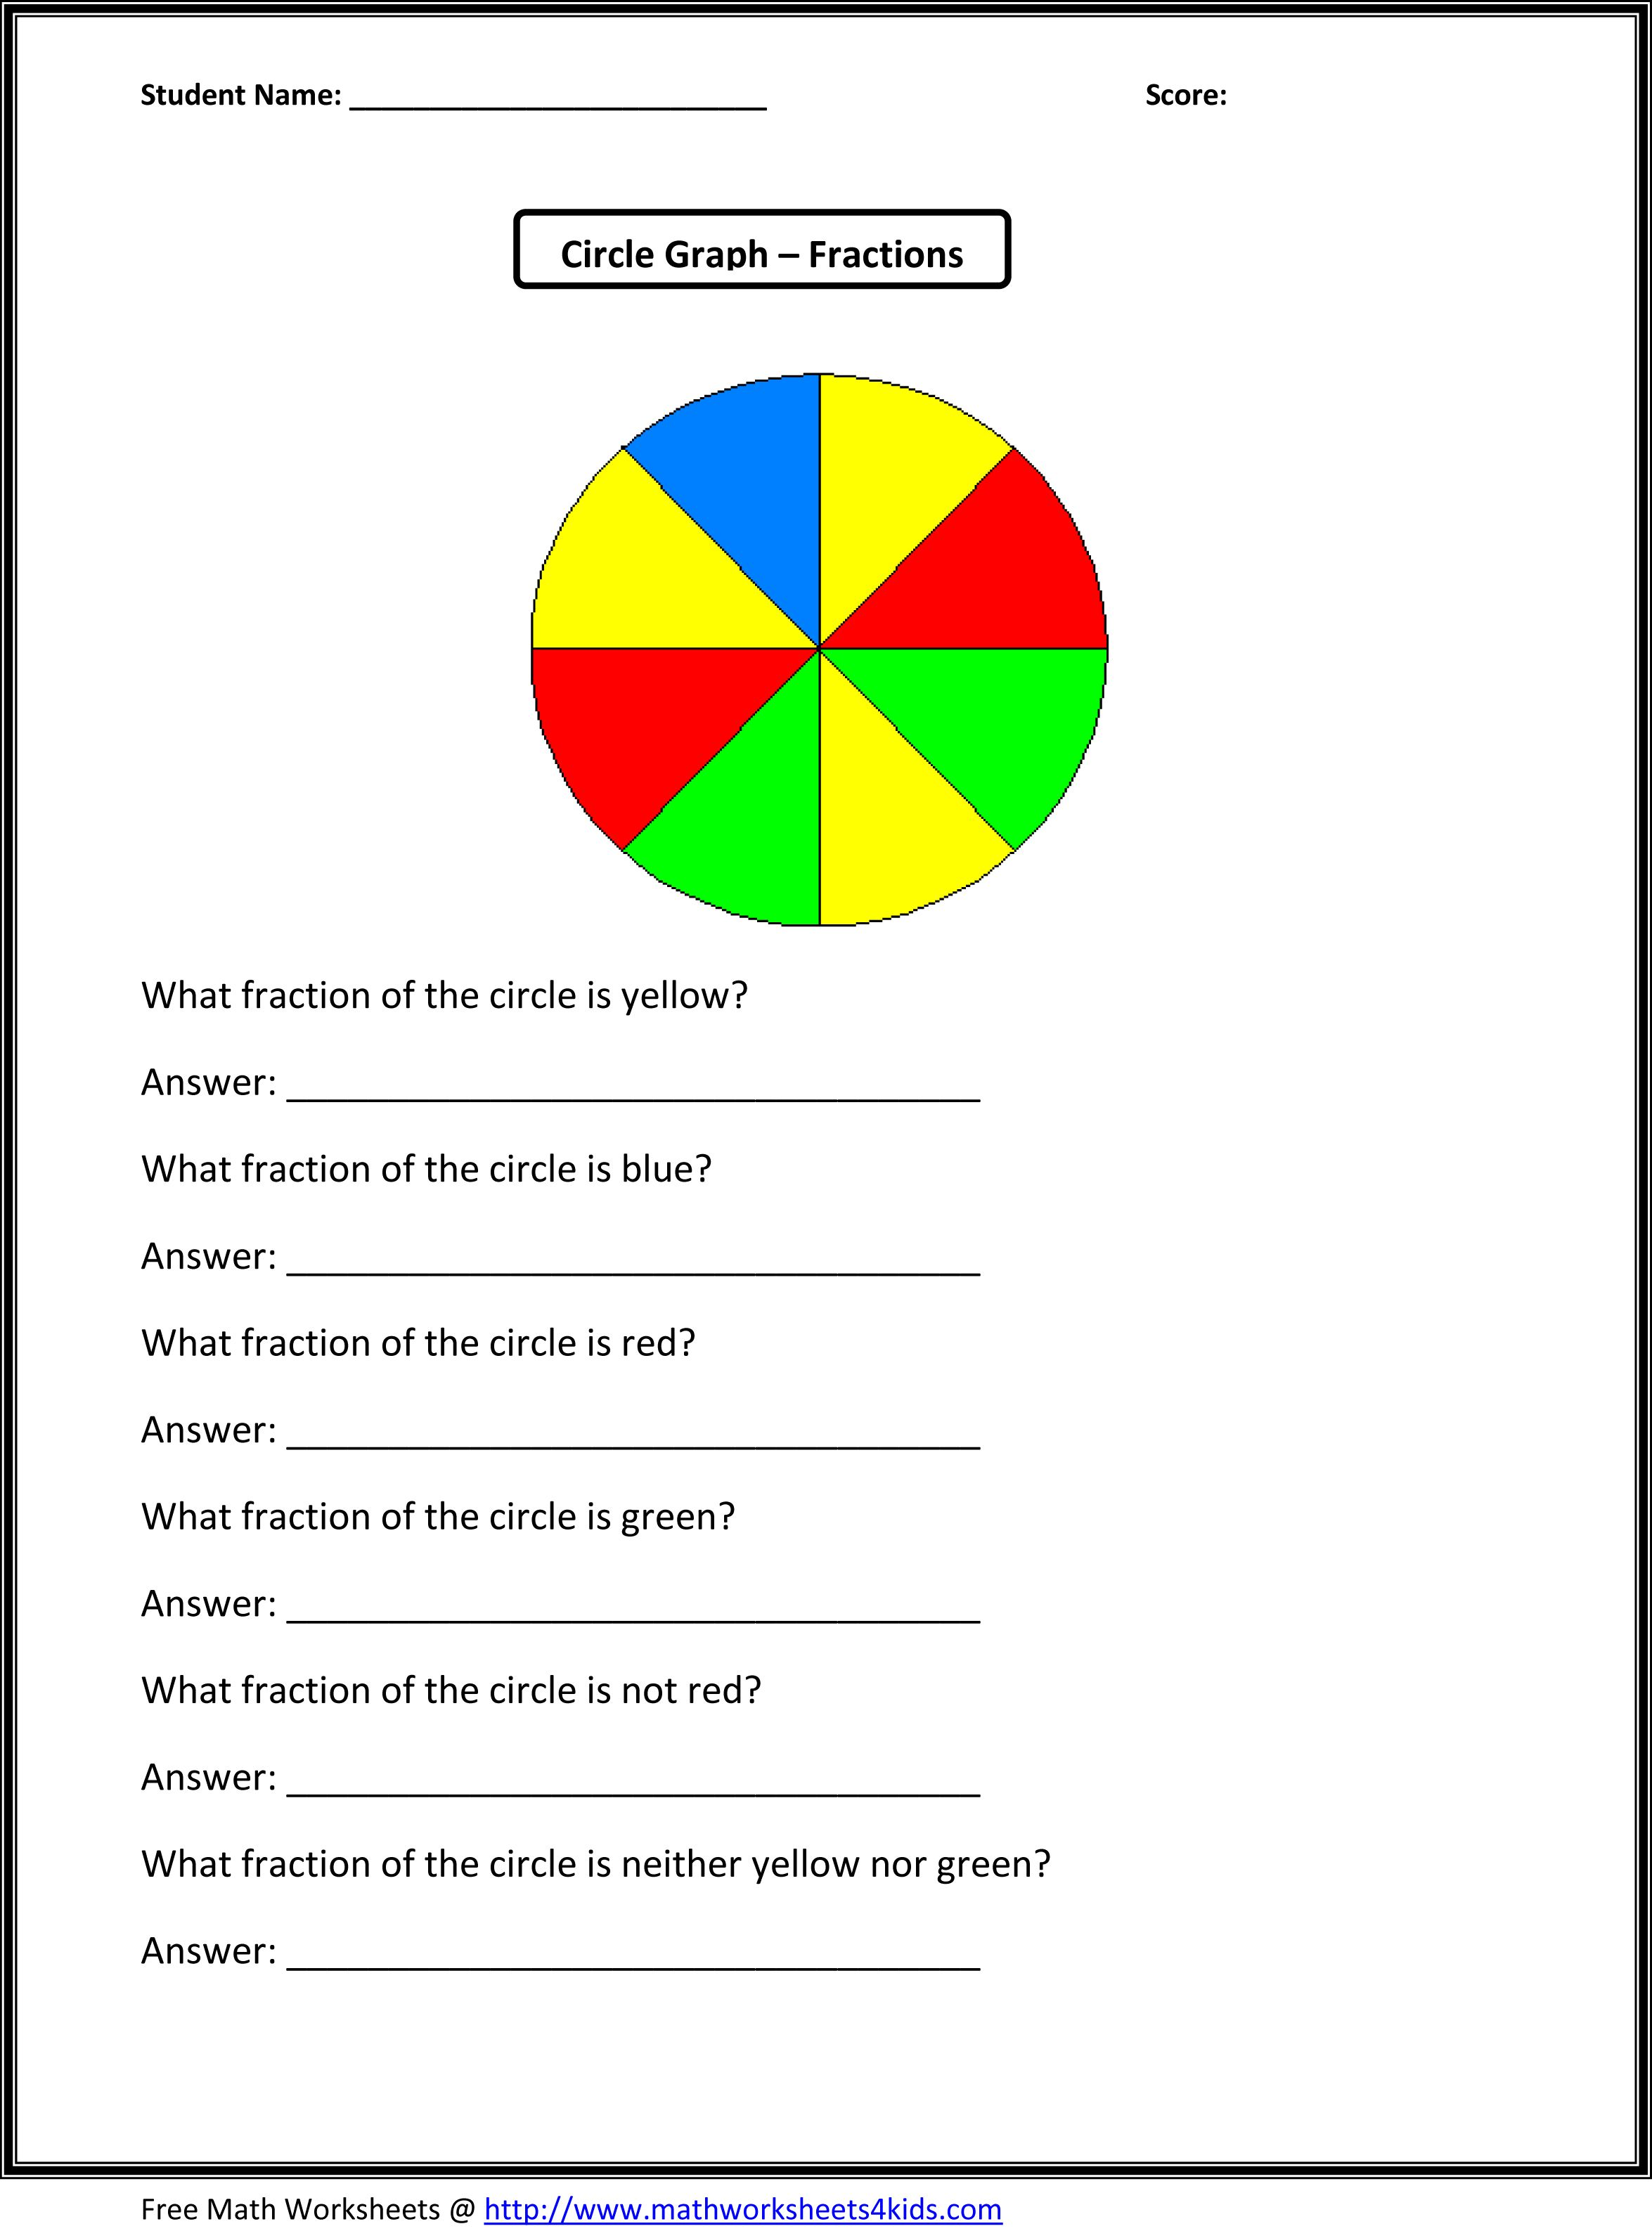 Worksheets Fraction Worksheets For 3rd Grade fraction activities games pinterest math worksheets and activities